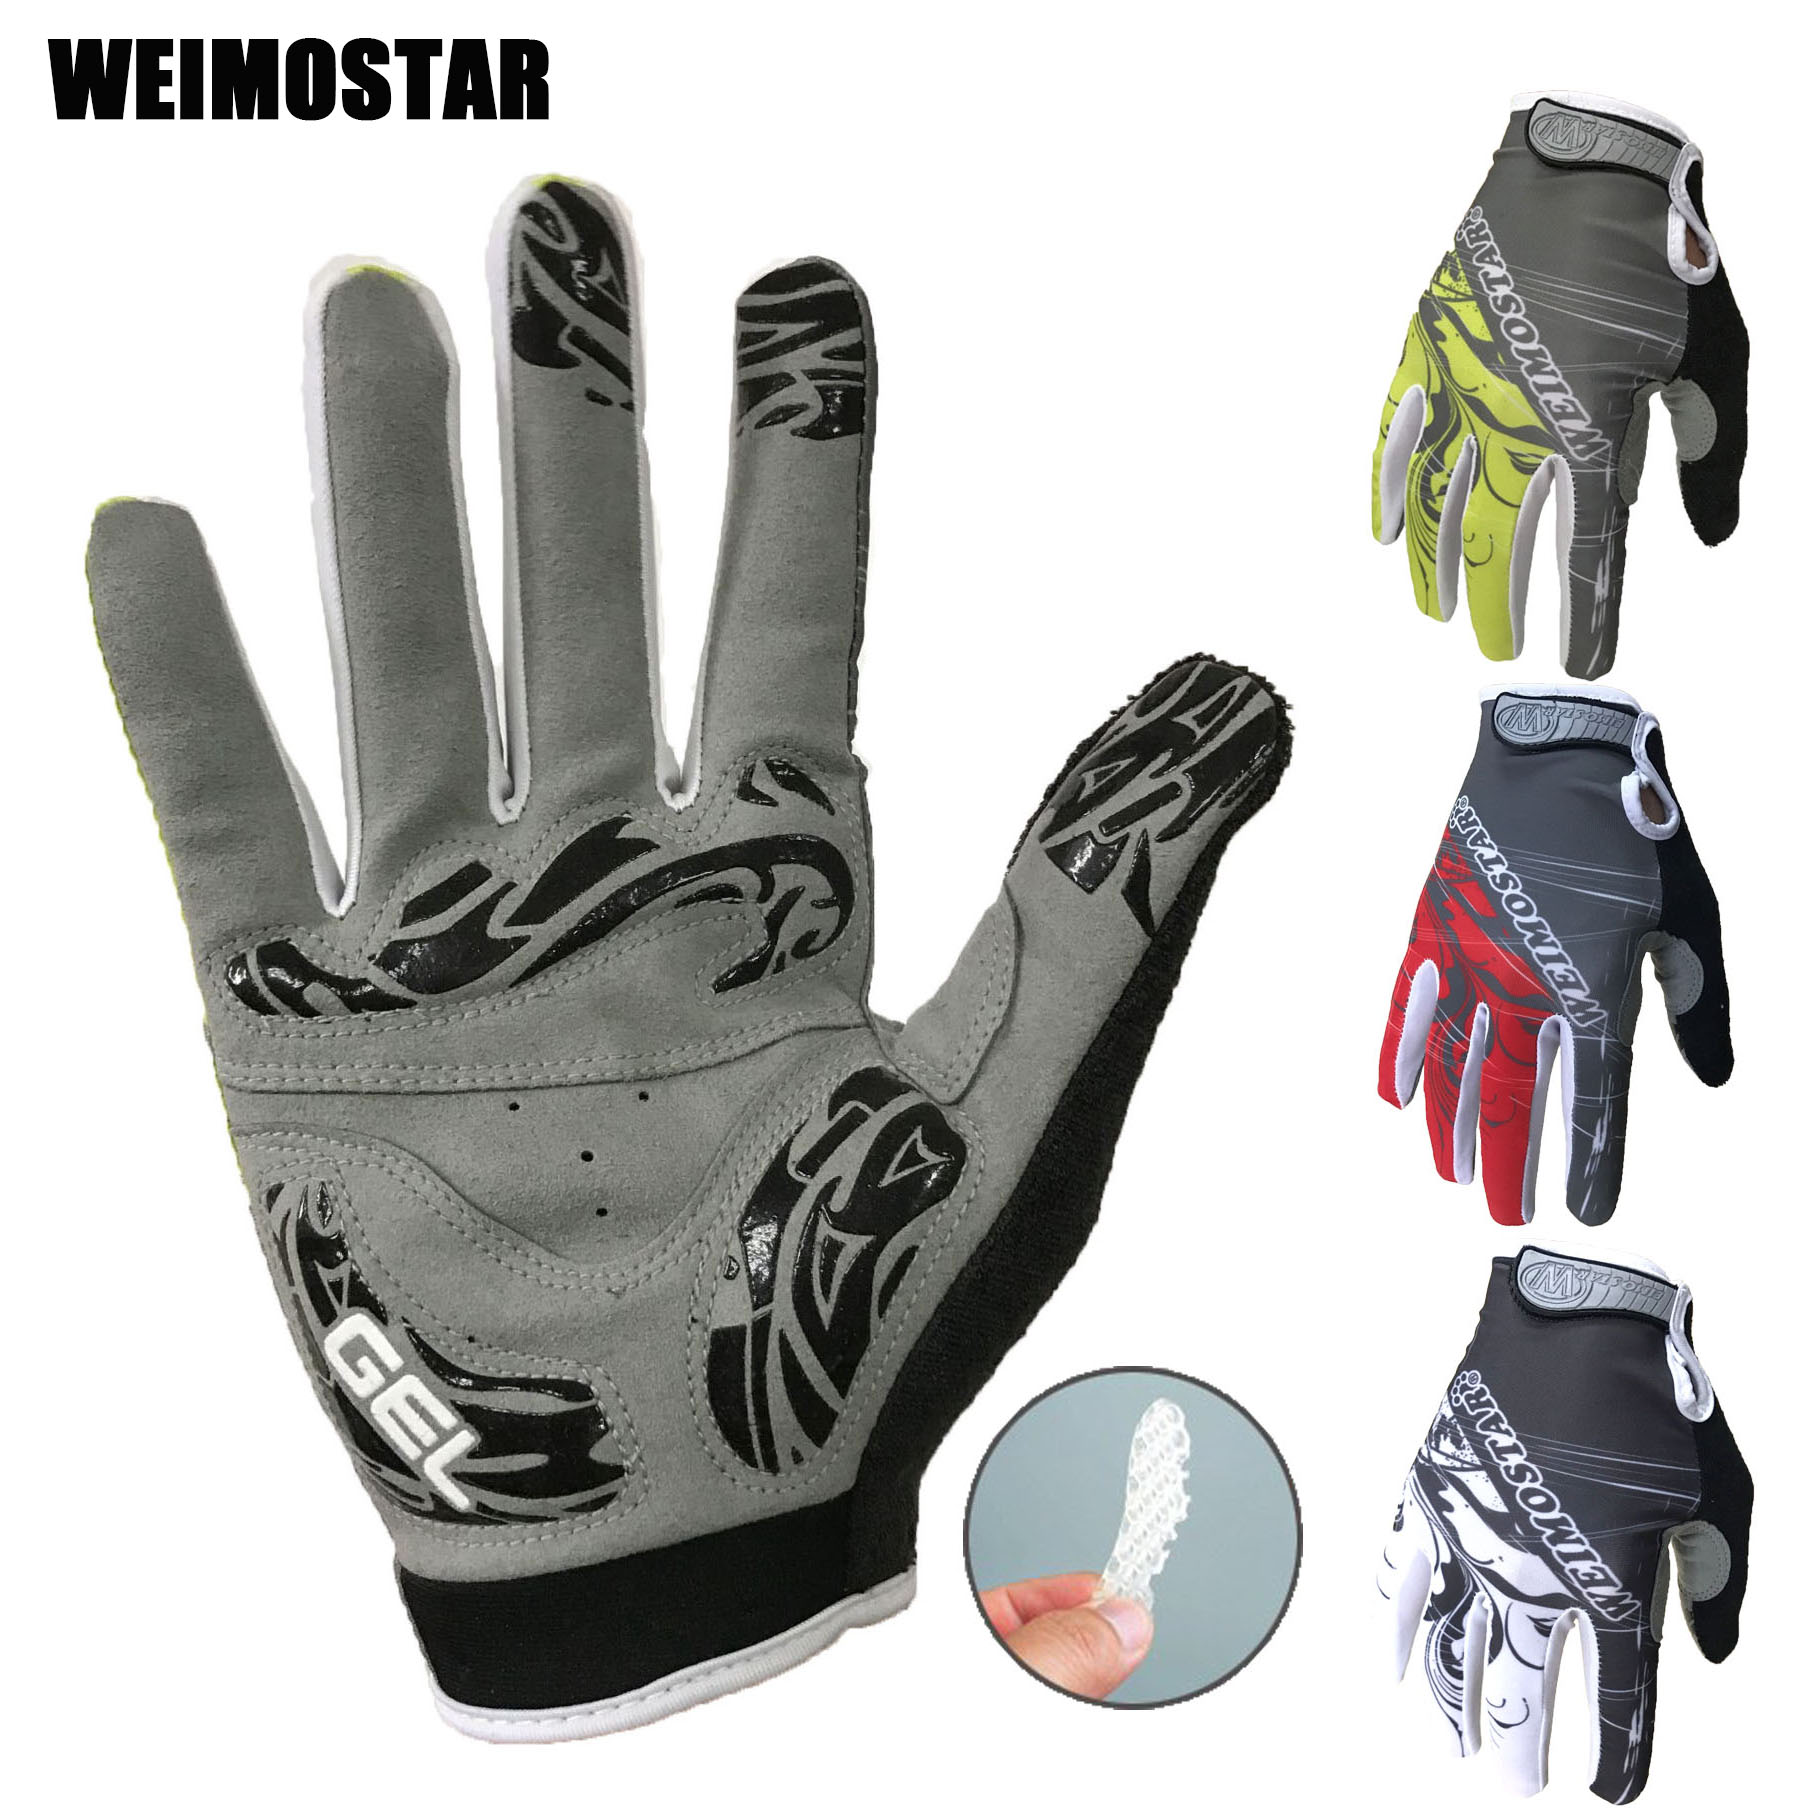 Wholesale Weimostar Full Finger Cycling Gloves Guantes Ciclismo Gel Rockbros S109 1 Bike Glove Sarung Tangan Sepeda Red Teleyi Sport Shockproof Mtb Touch Screen Man Woman Bicycle Sponge